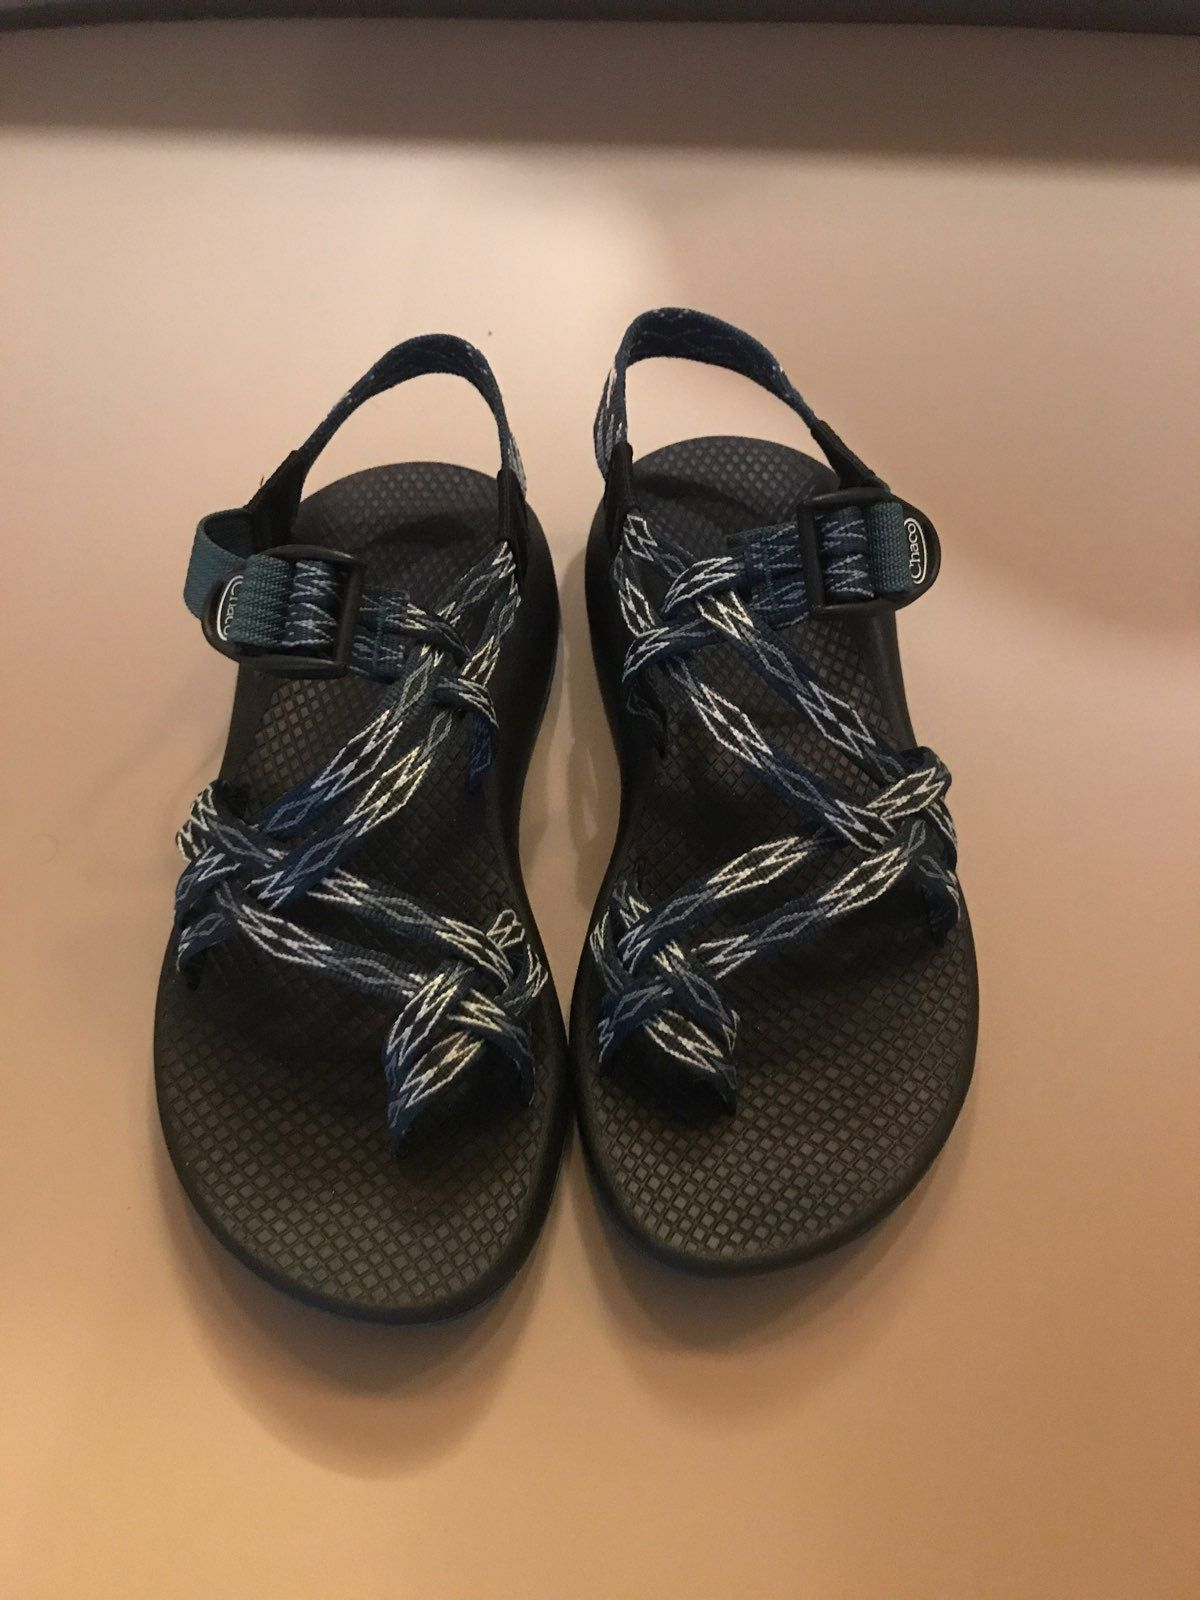 Like New Women S Size 7 Chacos They Are Green With A White And Green Diamond Design They Have A Different But Similar Desig Chacos Water Shoes Chacos Sandals